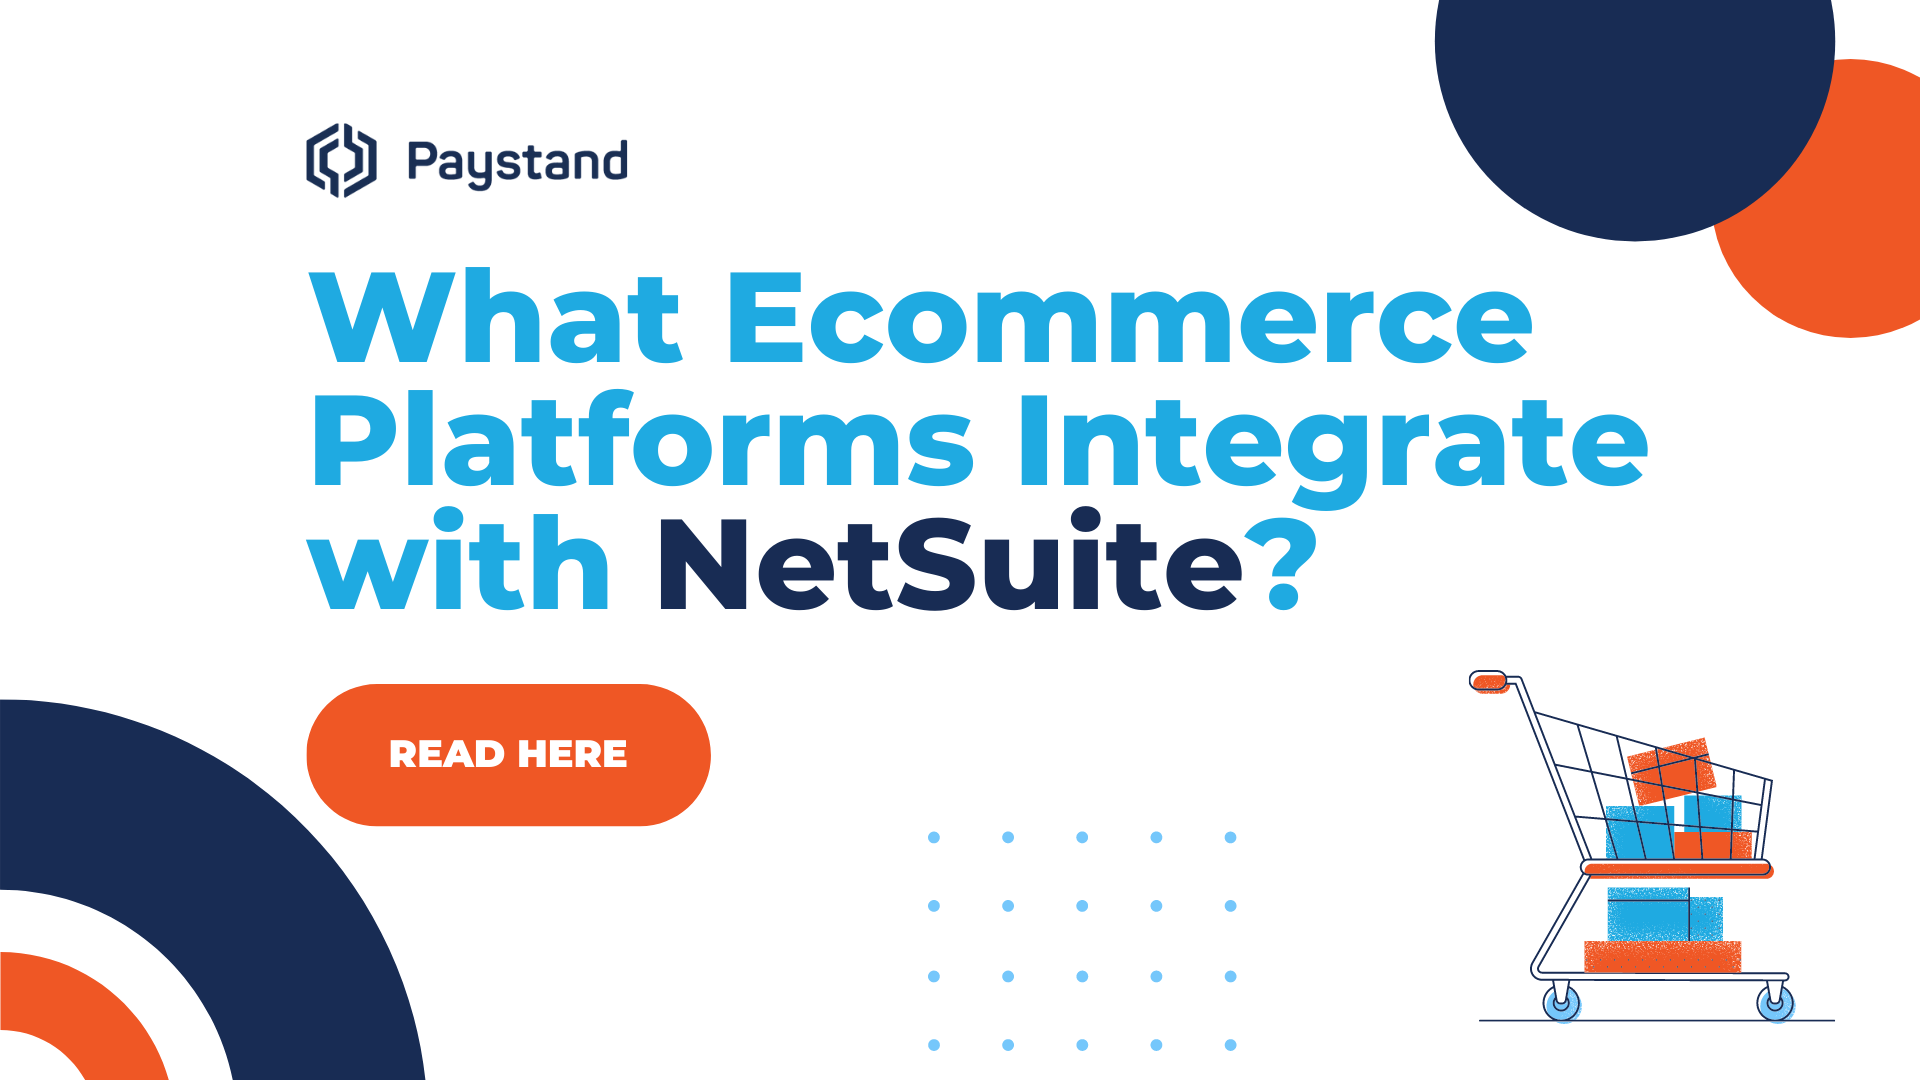 What Ecommerce Platforms Integrate with NetSuite